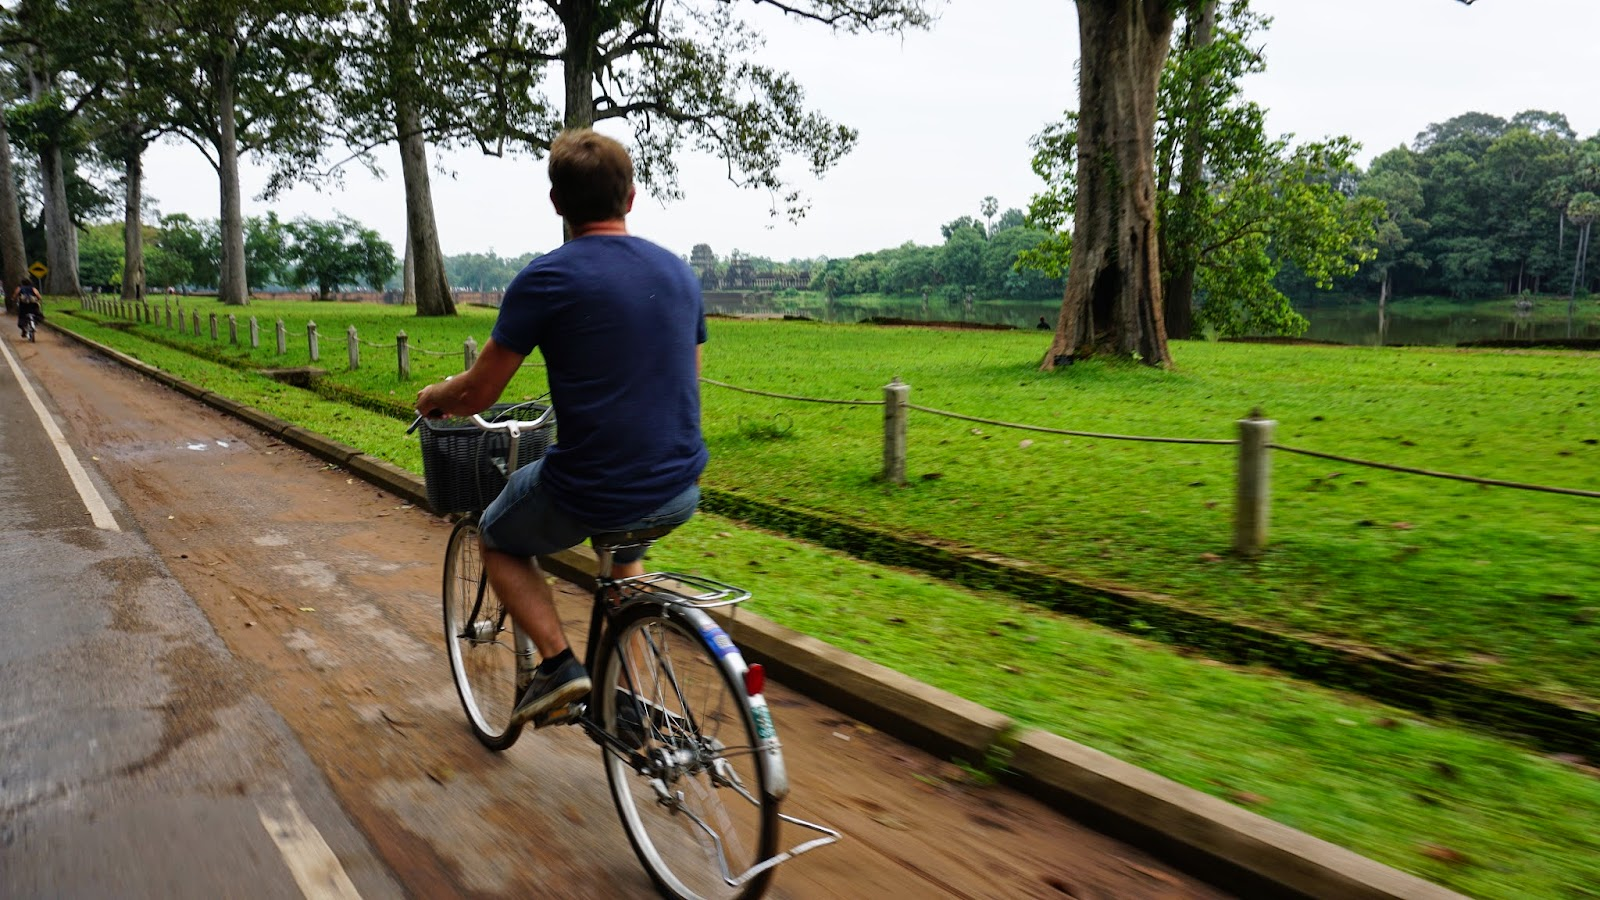 Cycling is a great way to get around Angkor at your own pace